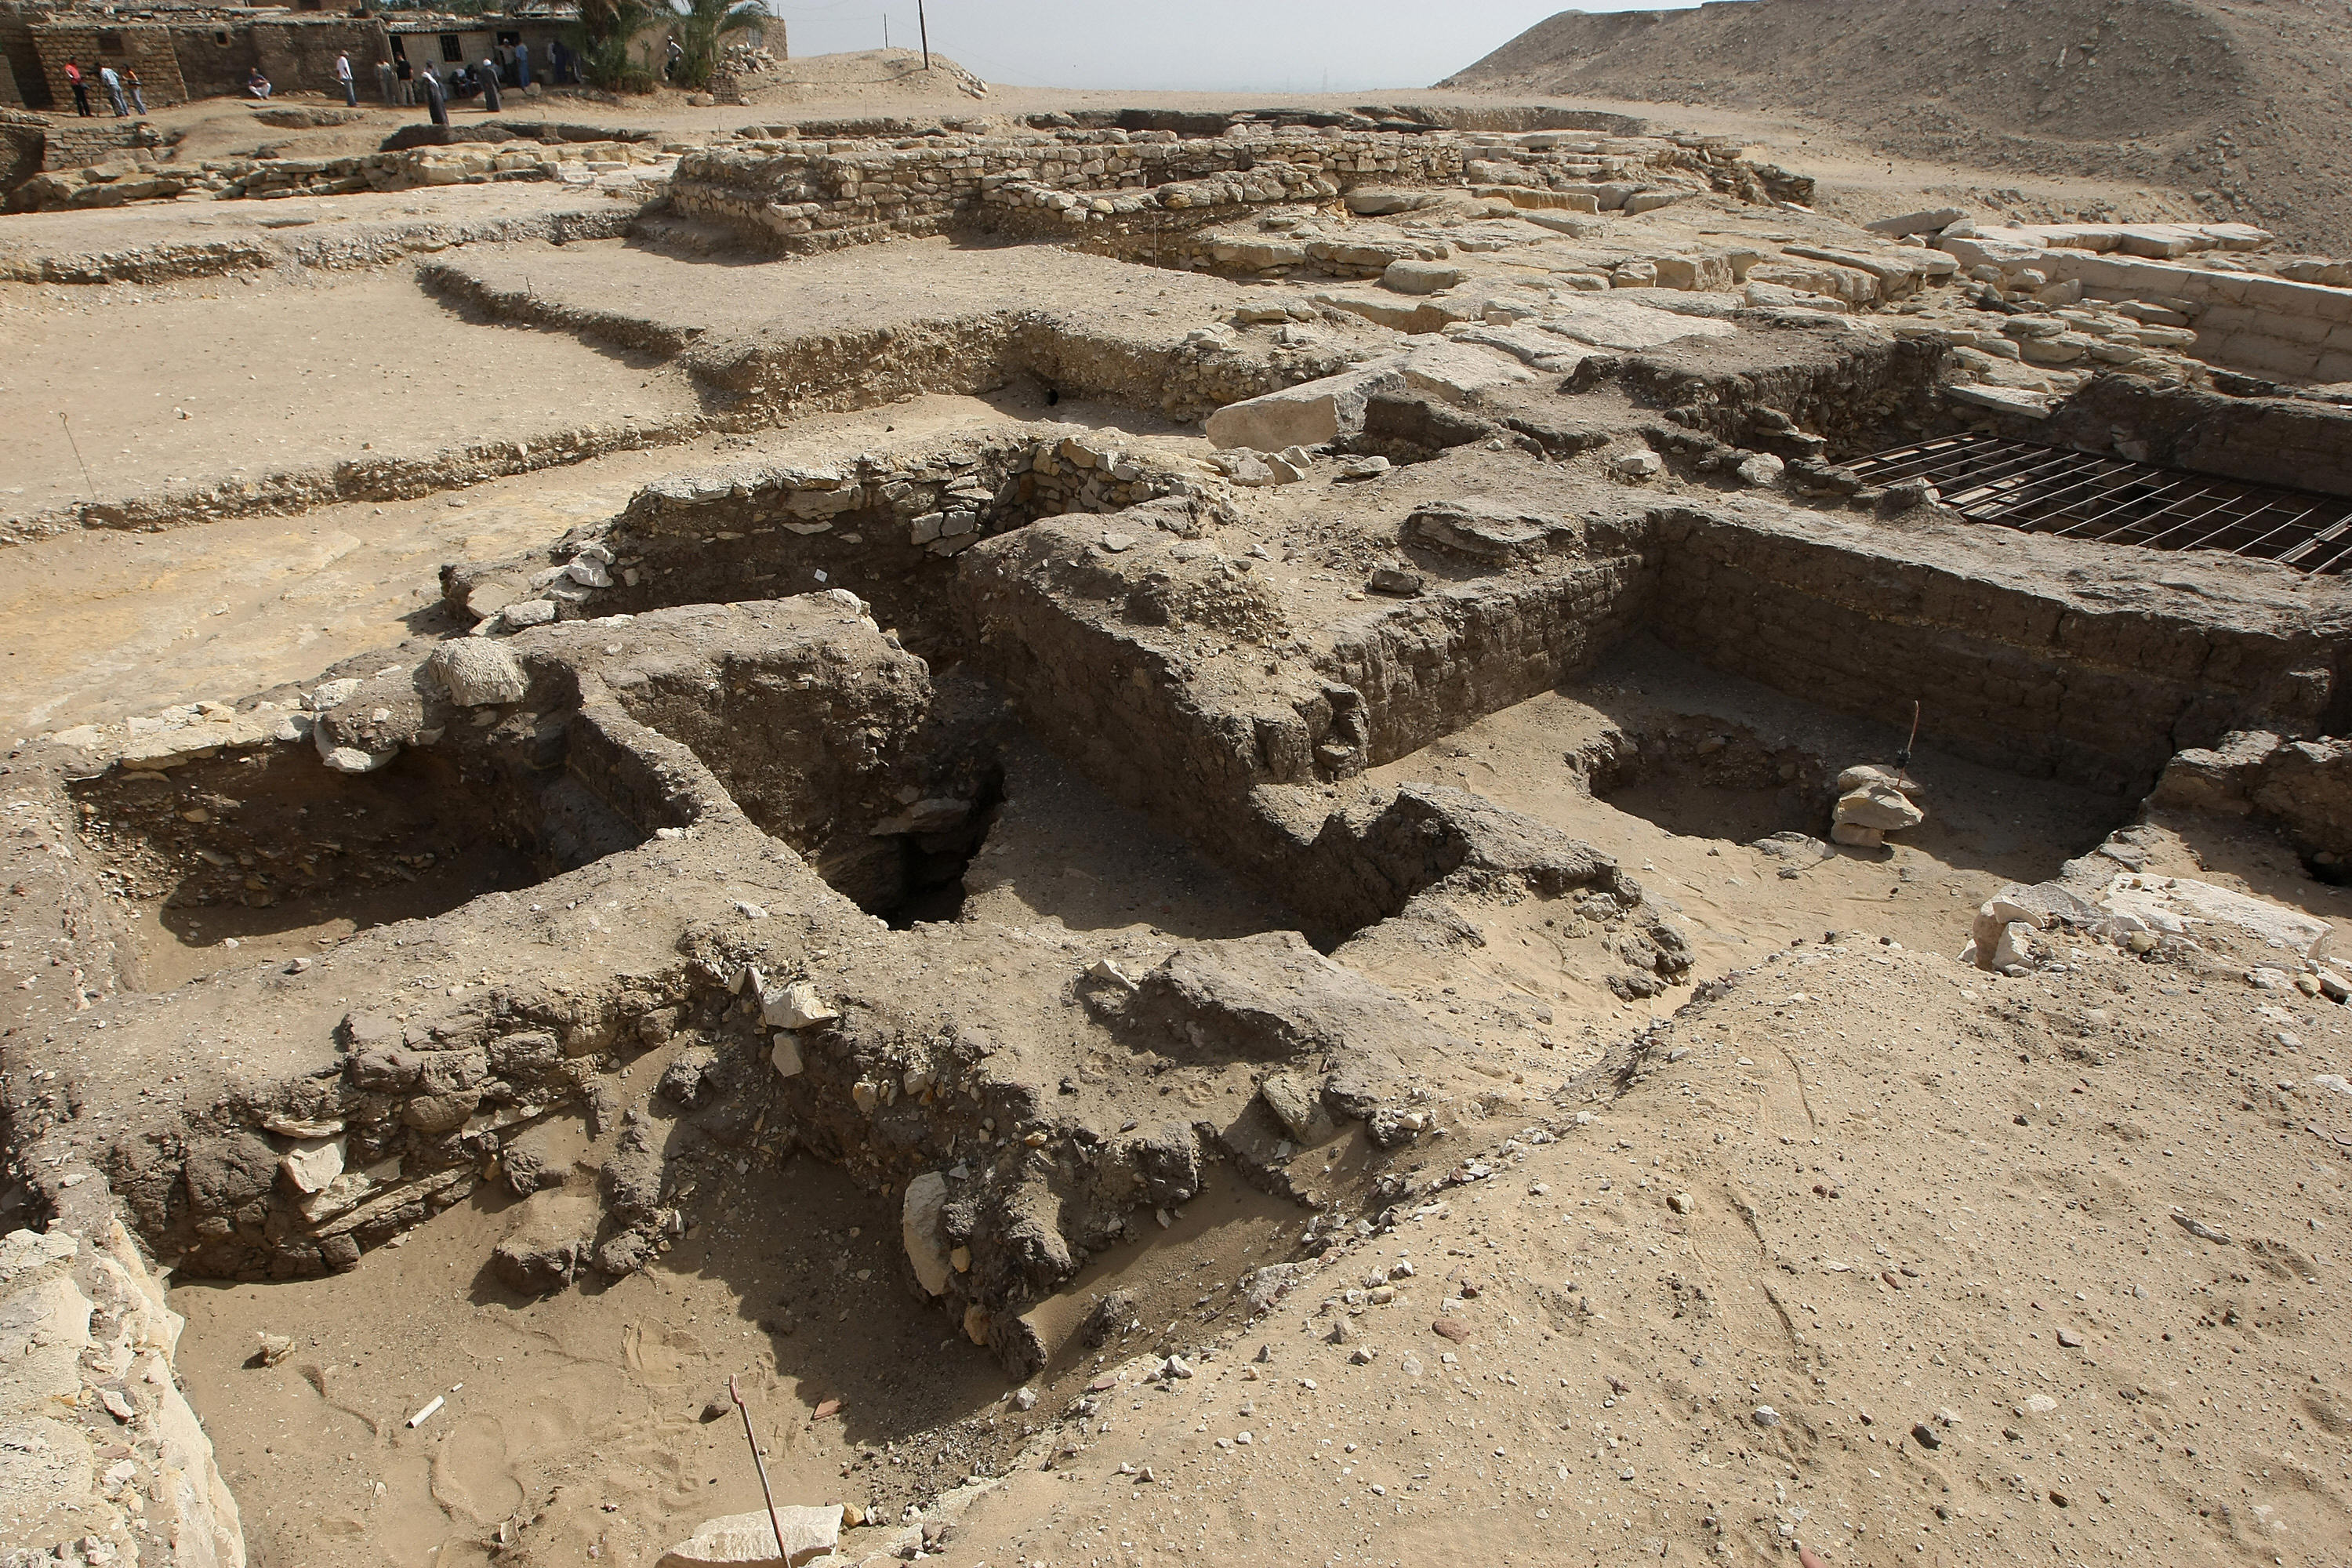 A general view shows the excavation site.